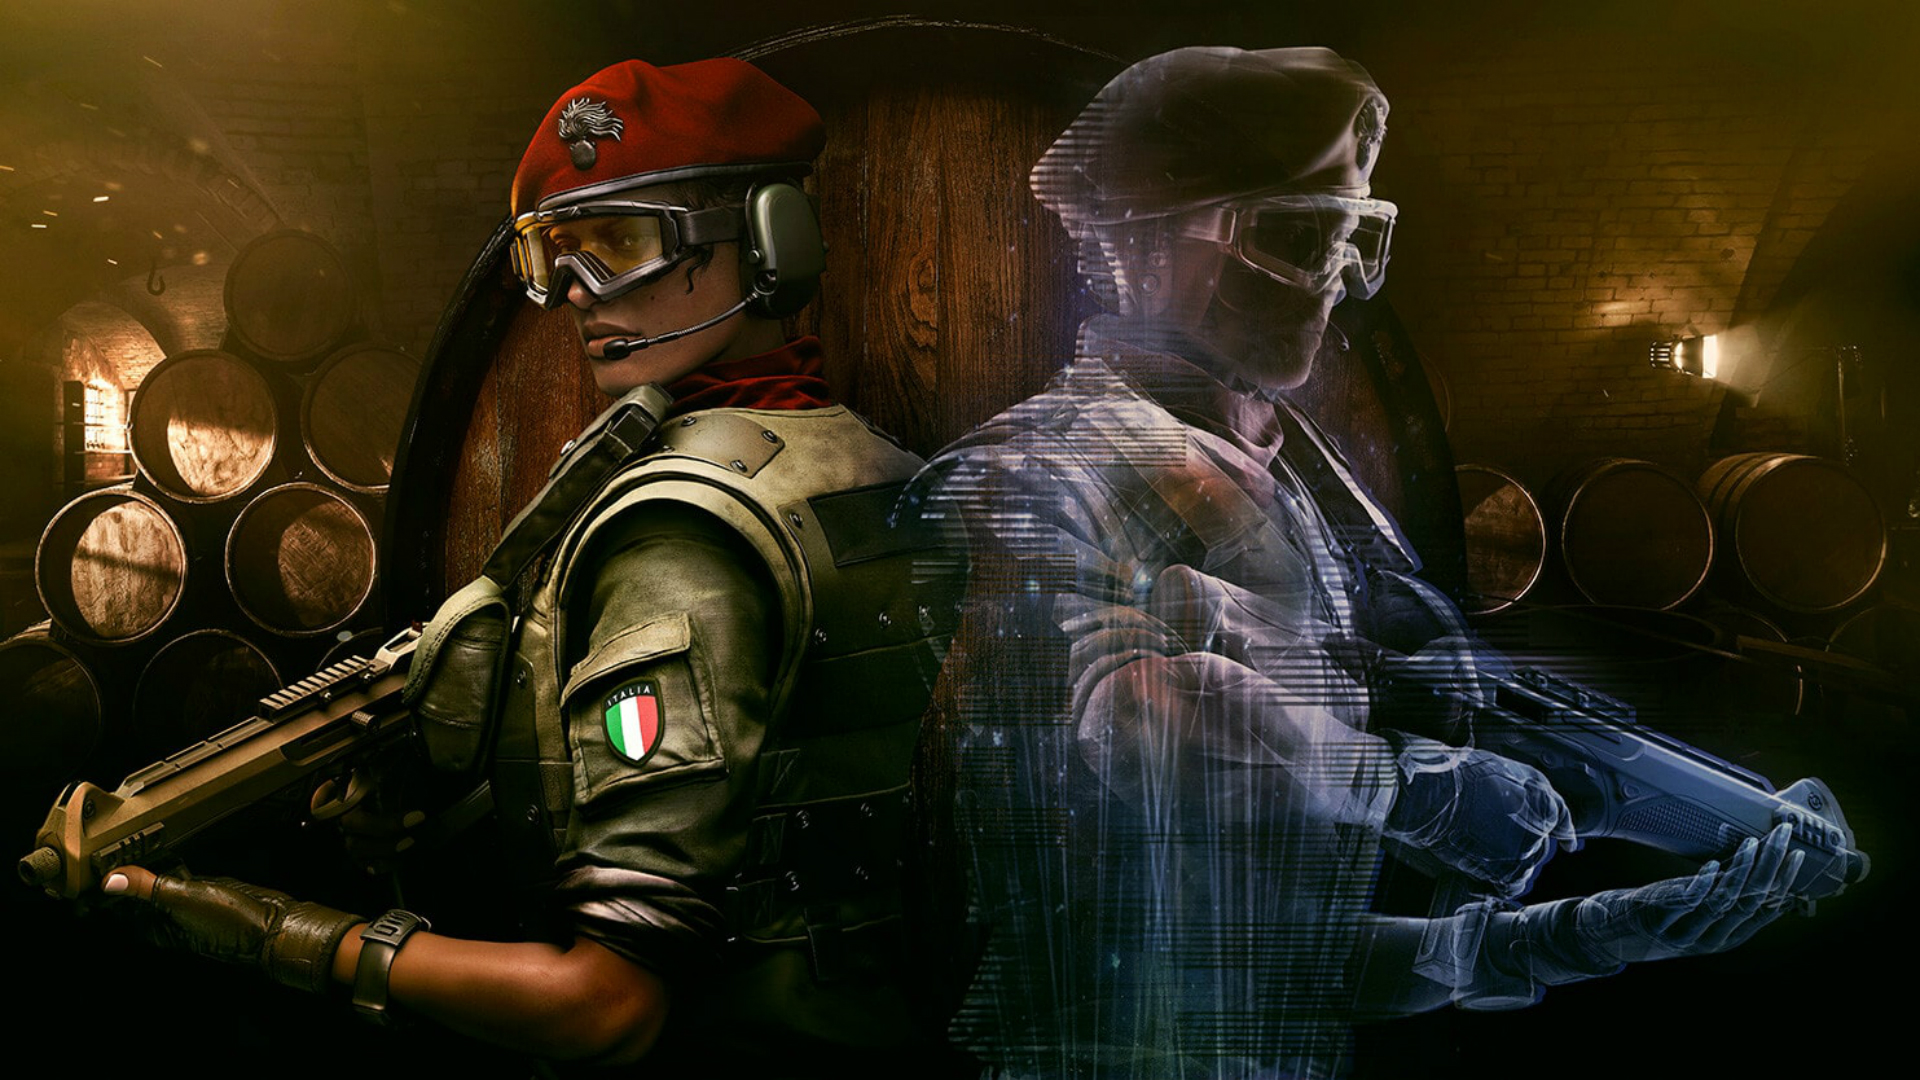 Rainbow Six Siege Year 4 Season 3 Gadget Details Leaked